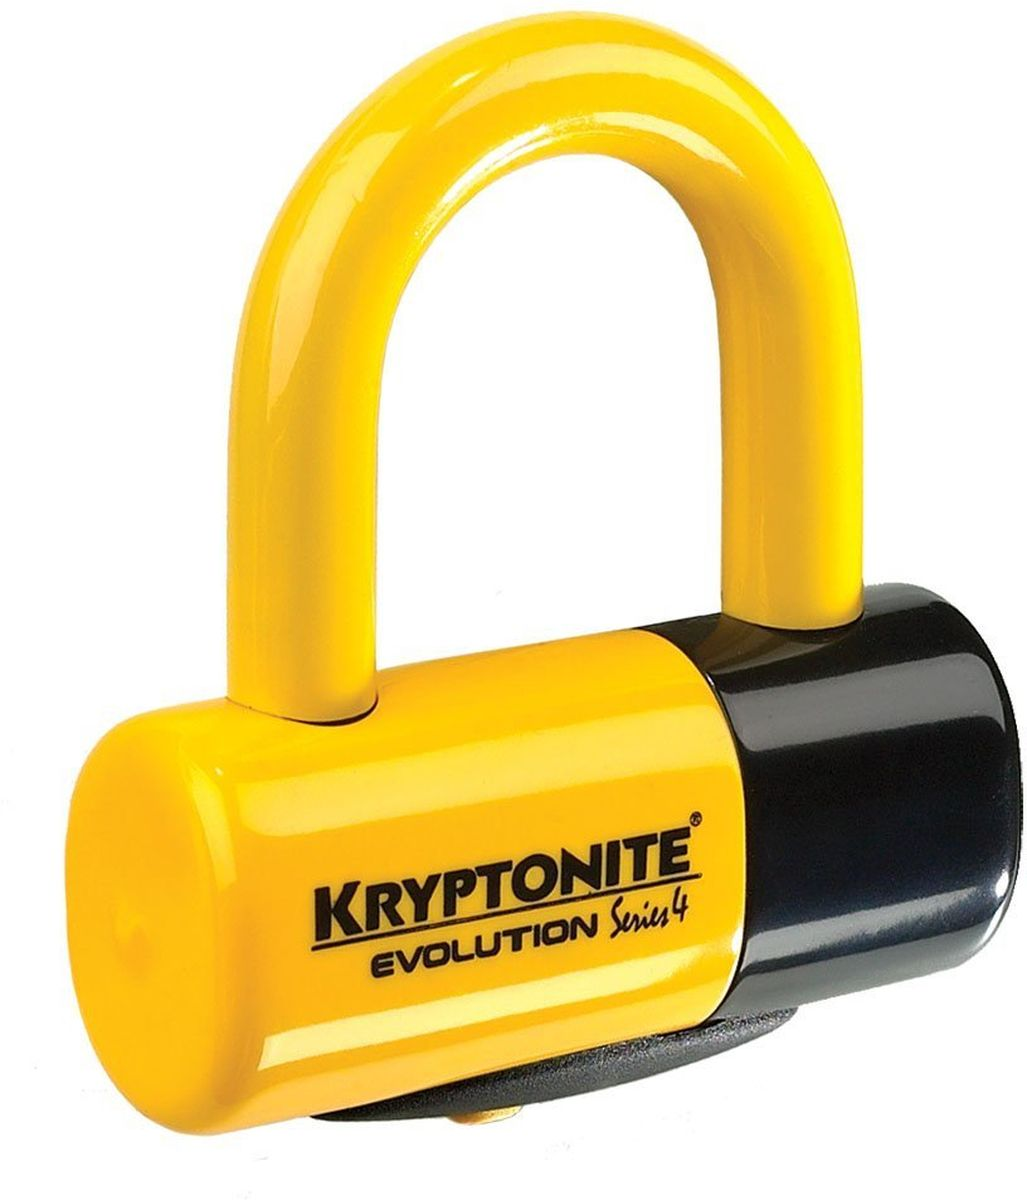 Замок велосипедный Kryptonite Disc Locks Evolution Series 4 Disc Lock, цвет: желтый, 4,8 х 5,4 см deroace велосипедный цепной стальной замок для электрокара электро мотороллера мотора